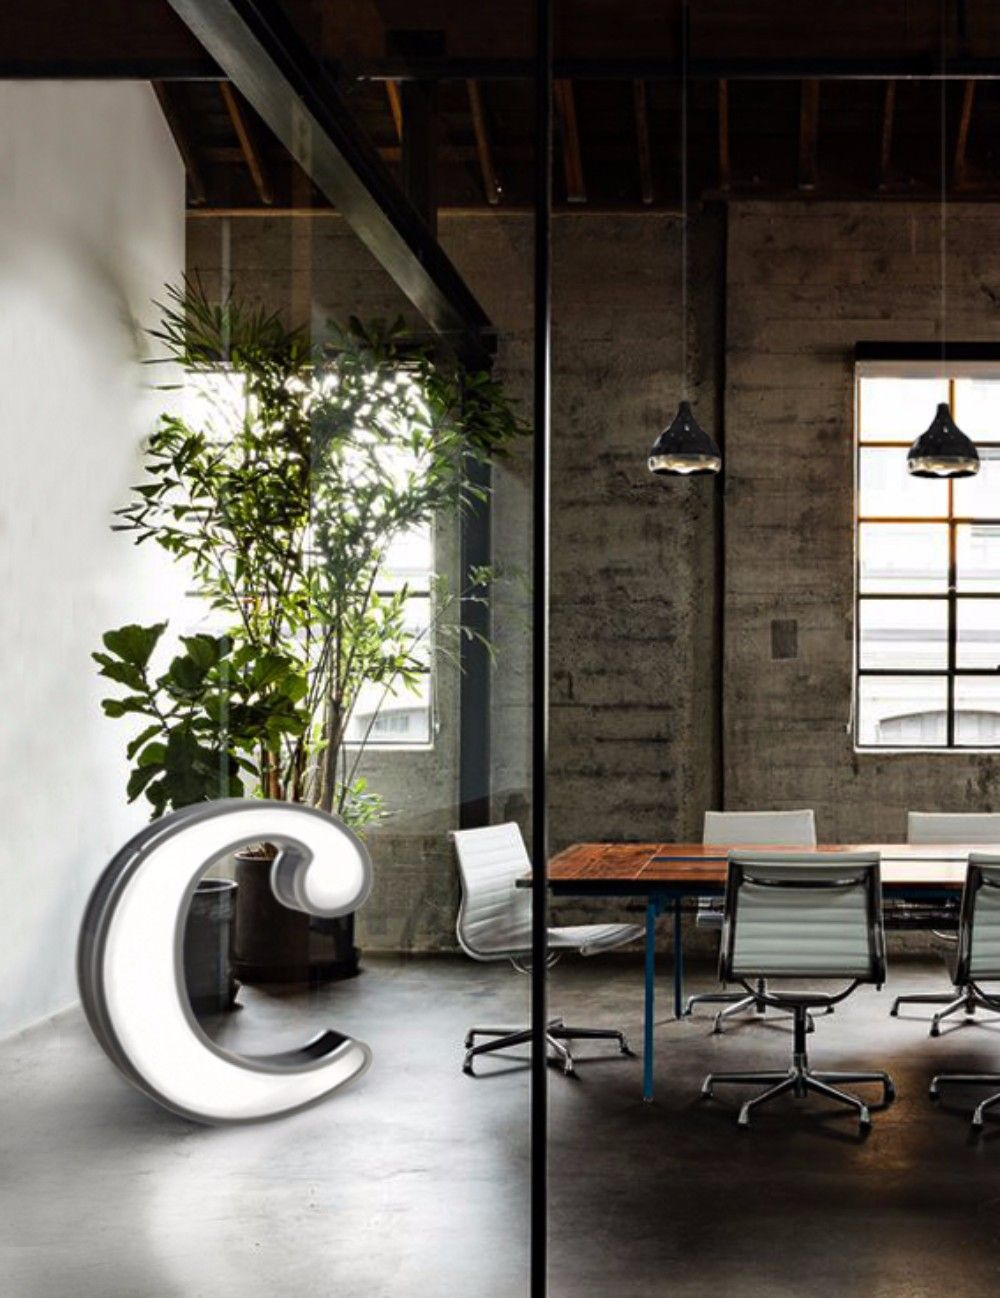 INDUSTRIAL DESIGN DONE RIGHT: THE BEST LIGHTING DESIGNS FOR YOUR LOFT